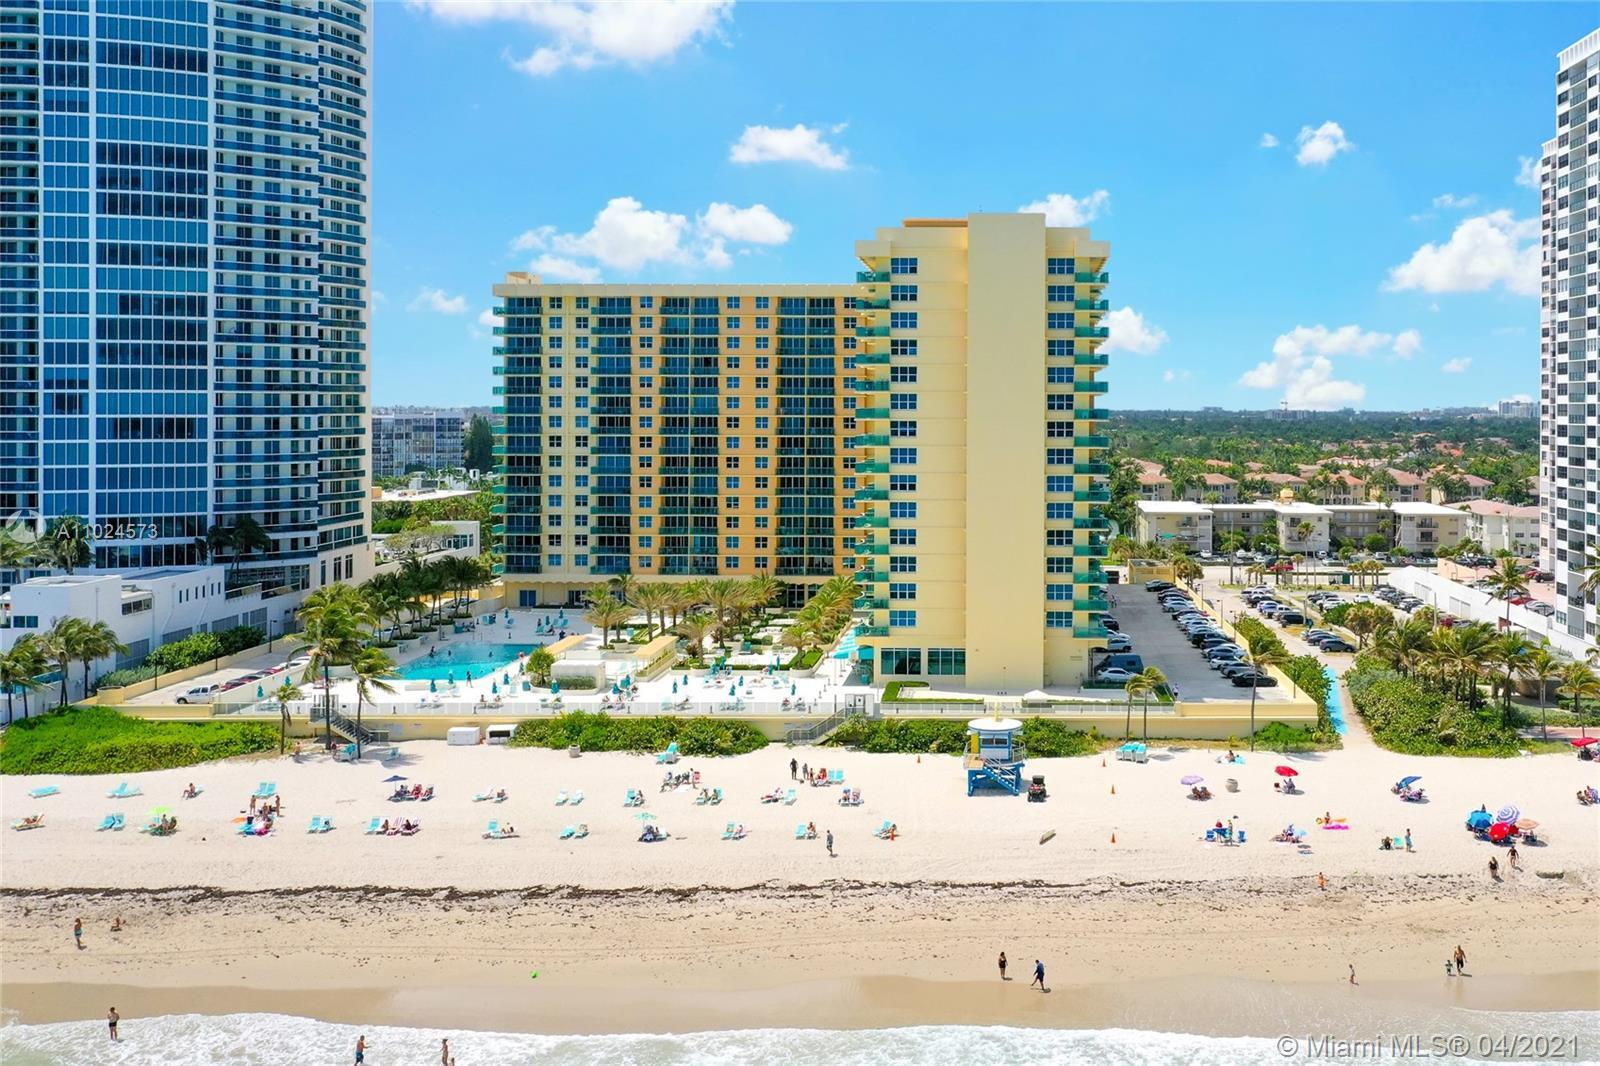 1 Bedroom / 1.5 Bathrooms apartment in the oceanfront condominium The Wave at Hollywood Beach. Kitch